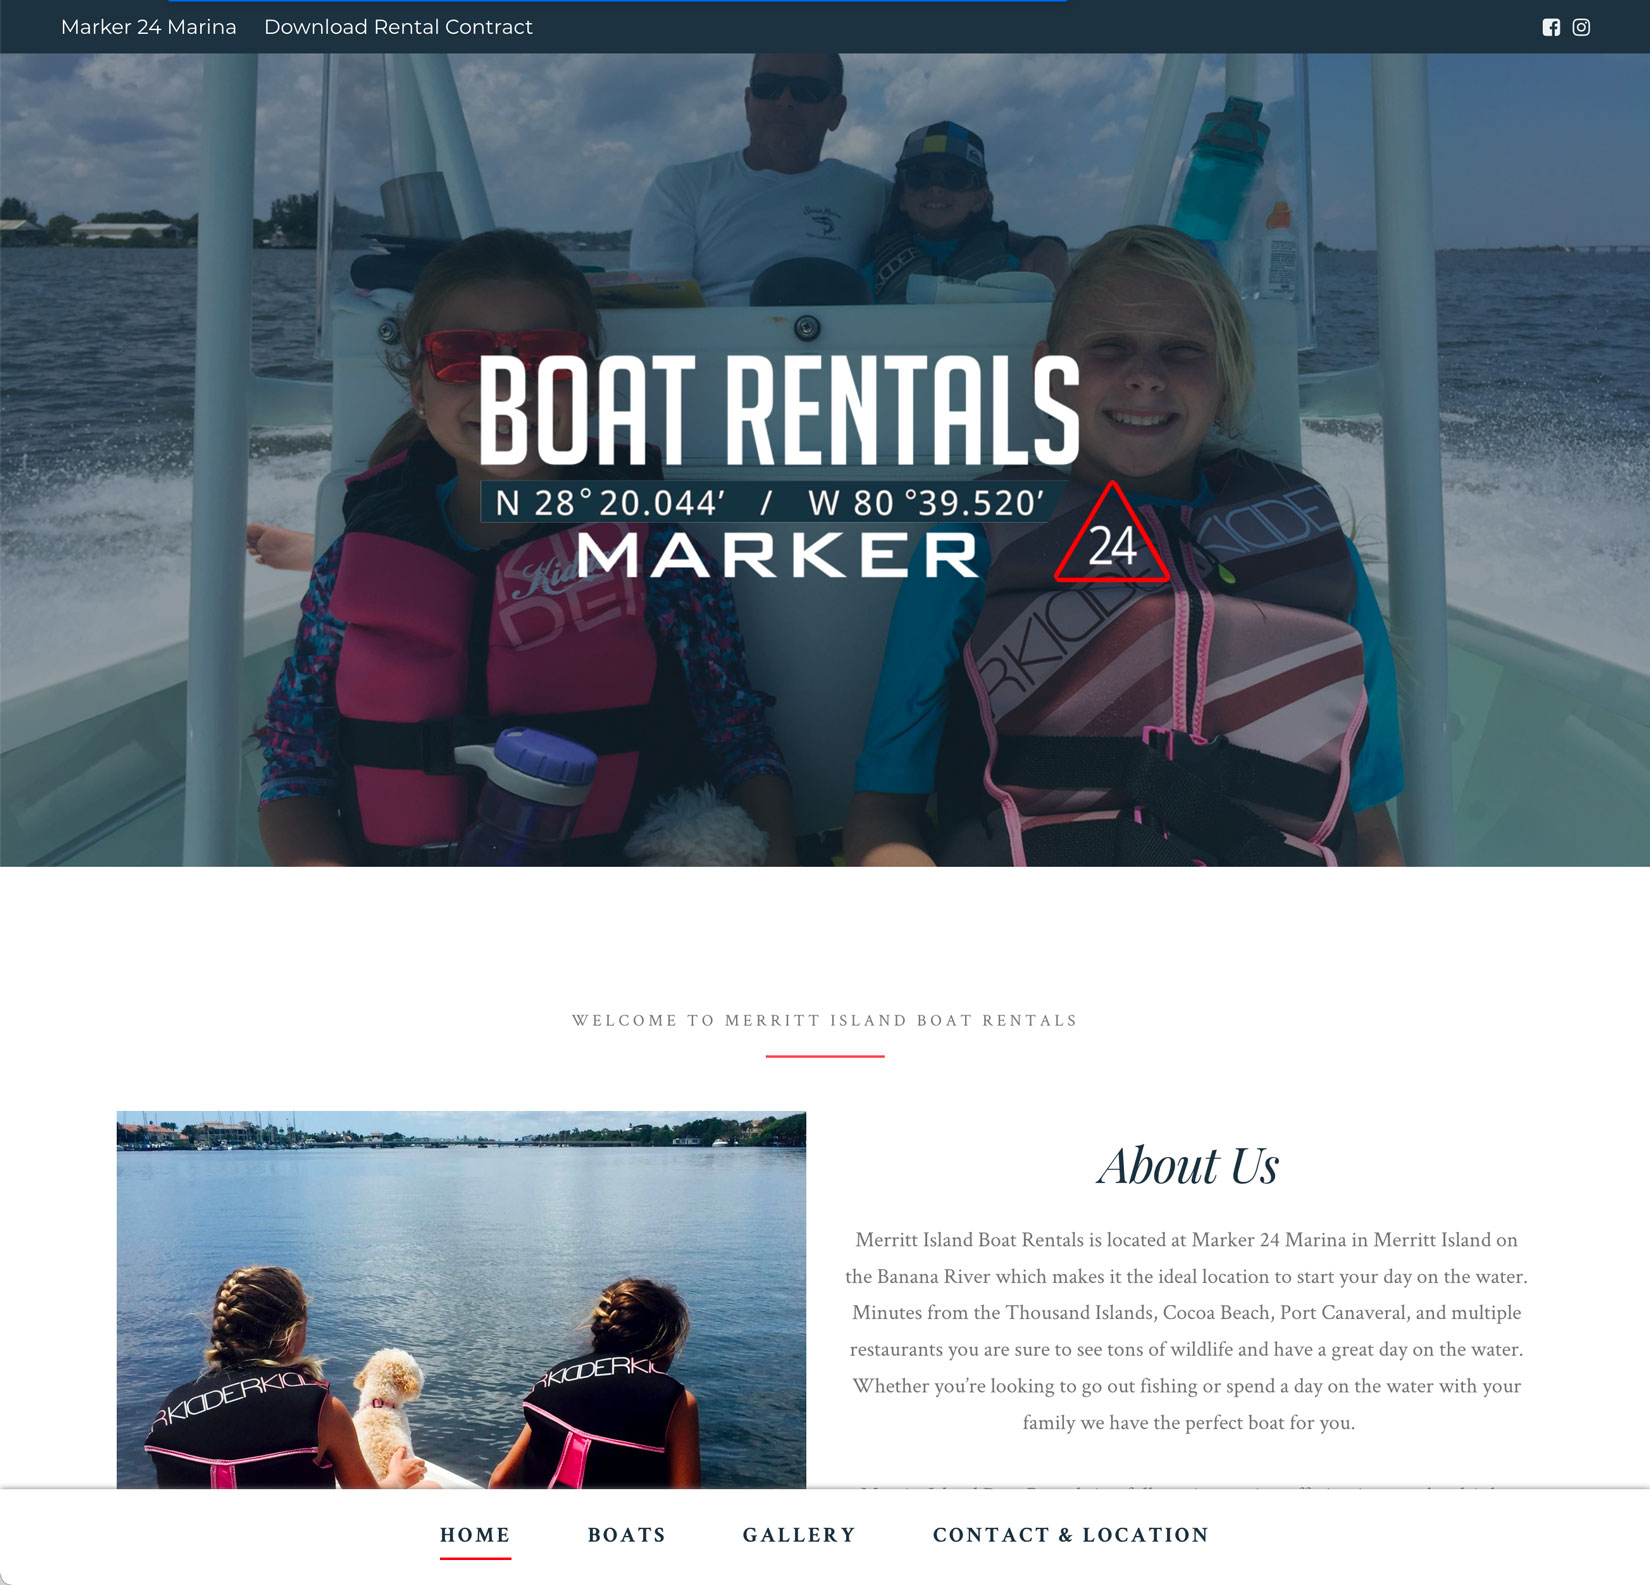 Website Launched: Merritt Island Boat Rentals